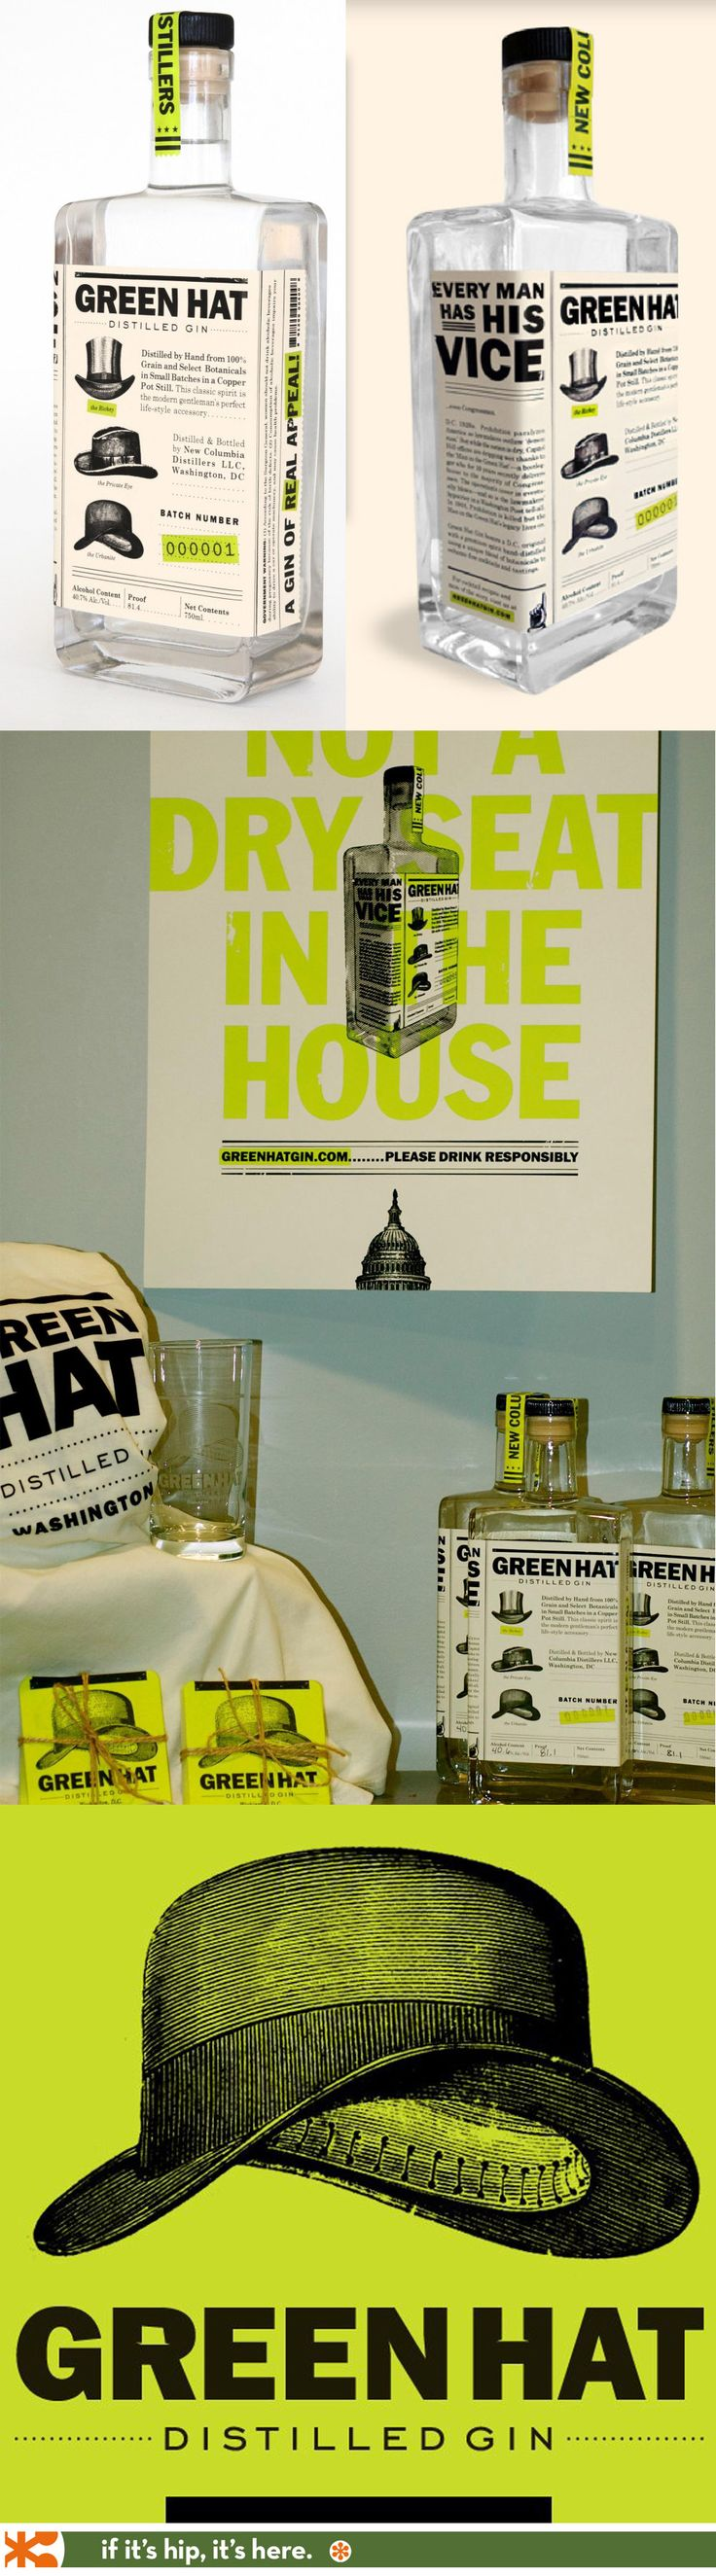 Green Hat Gin's beautiful bottle design and branding.